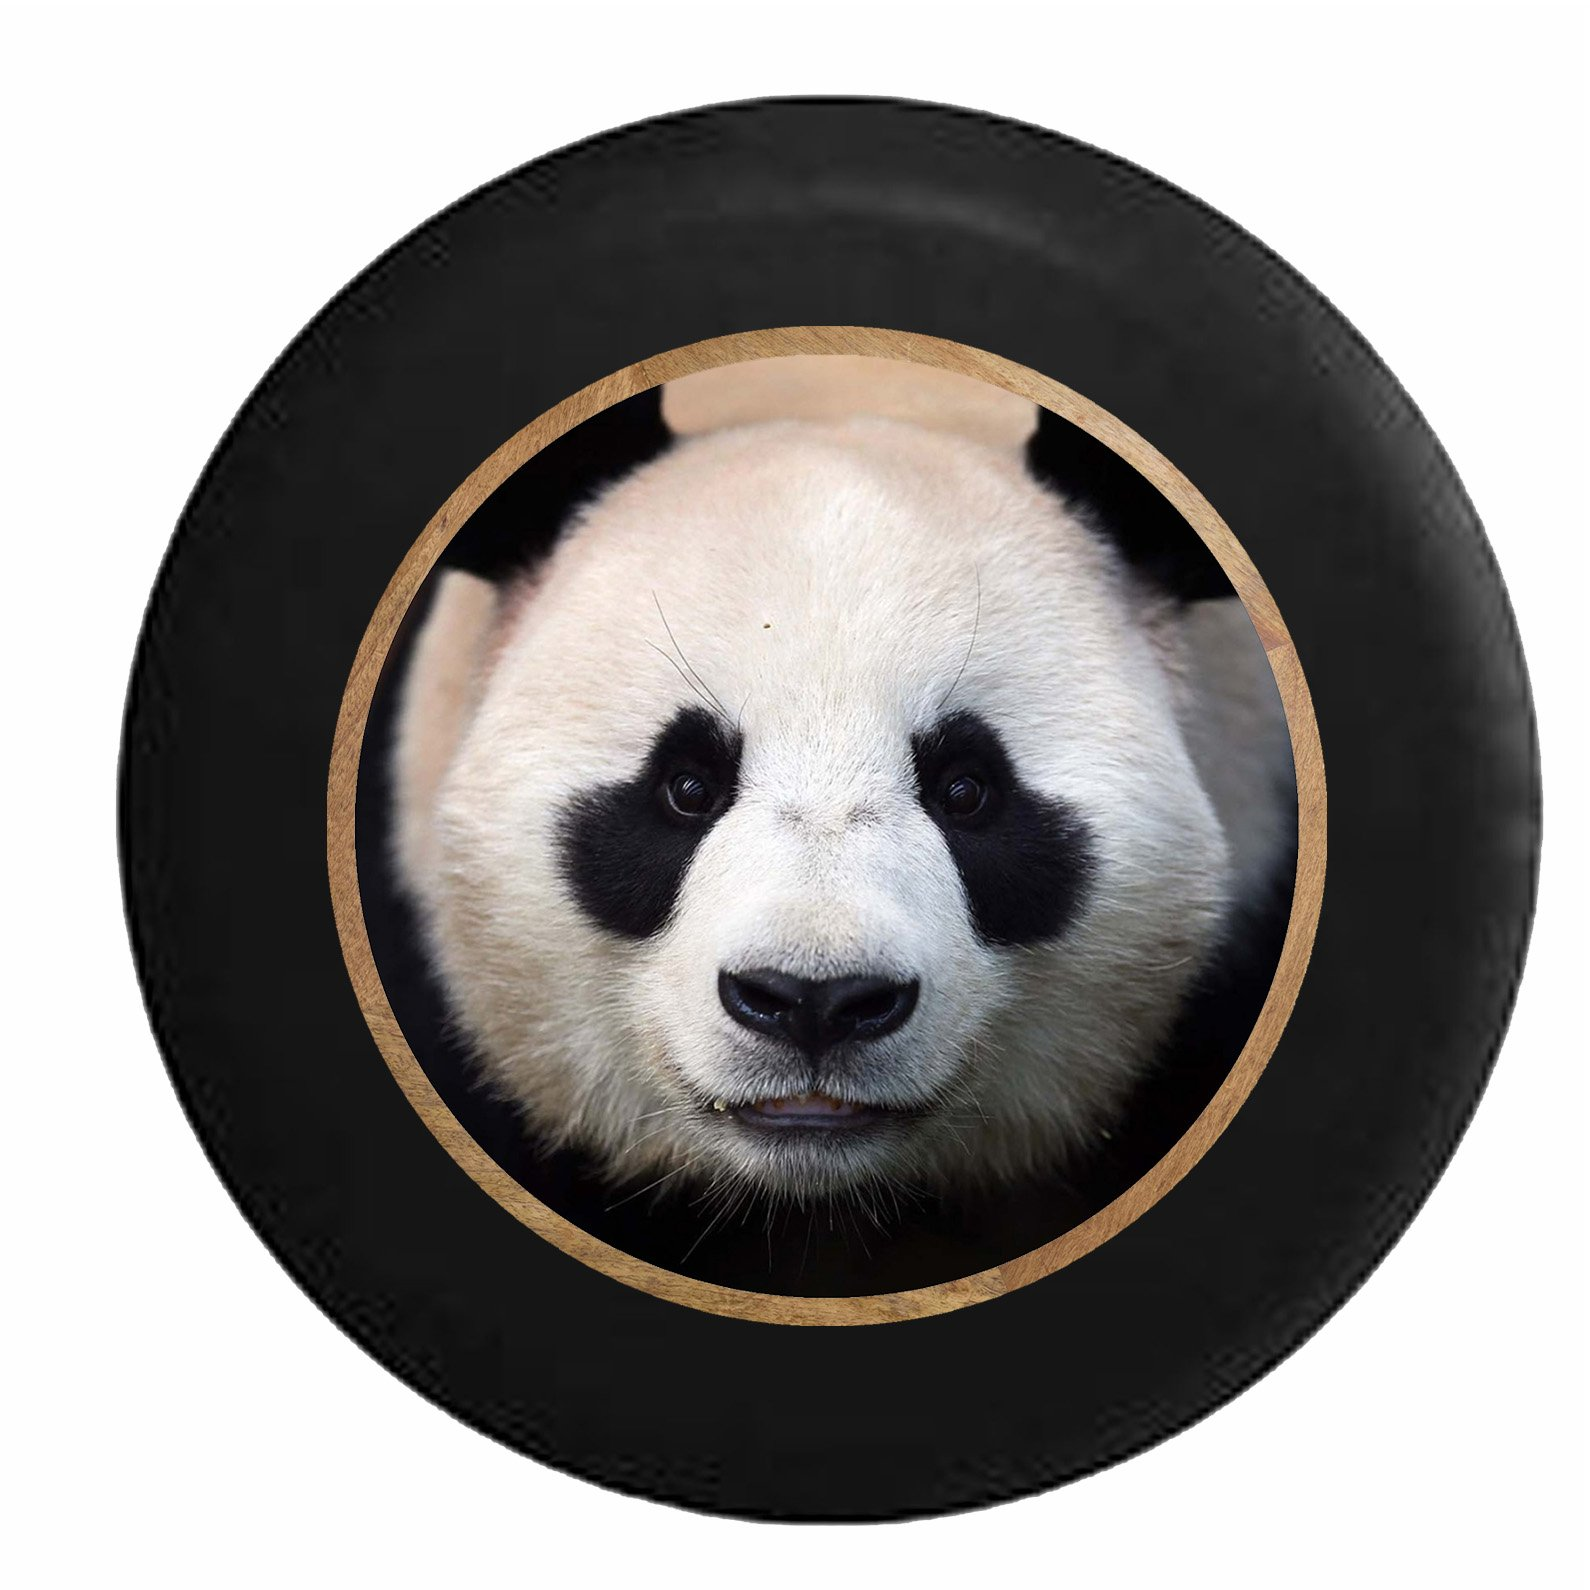 Pike Outdoors Full Color Cute Panda Staring Back at You Spare Tire Cover fits SUV Camper RV Accessories Black 35 in by Pike Outdoors